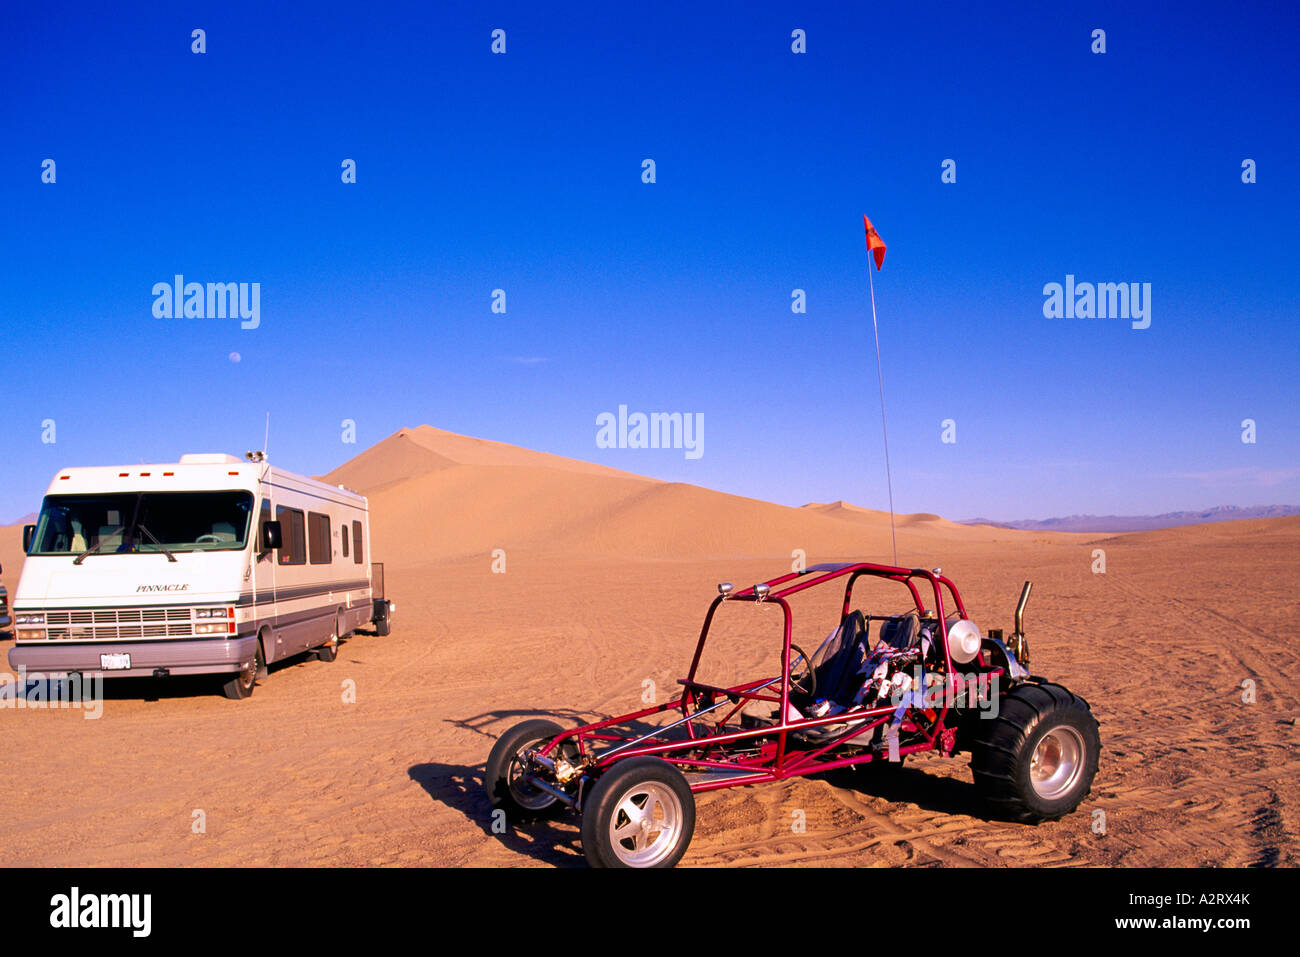 Dune Buggy and Recreational Vehicle at the Dumont Sand Dunes near Death Valley National Park California USA - Stock Image